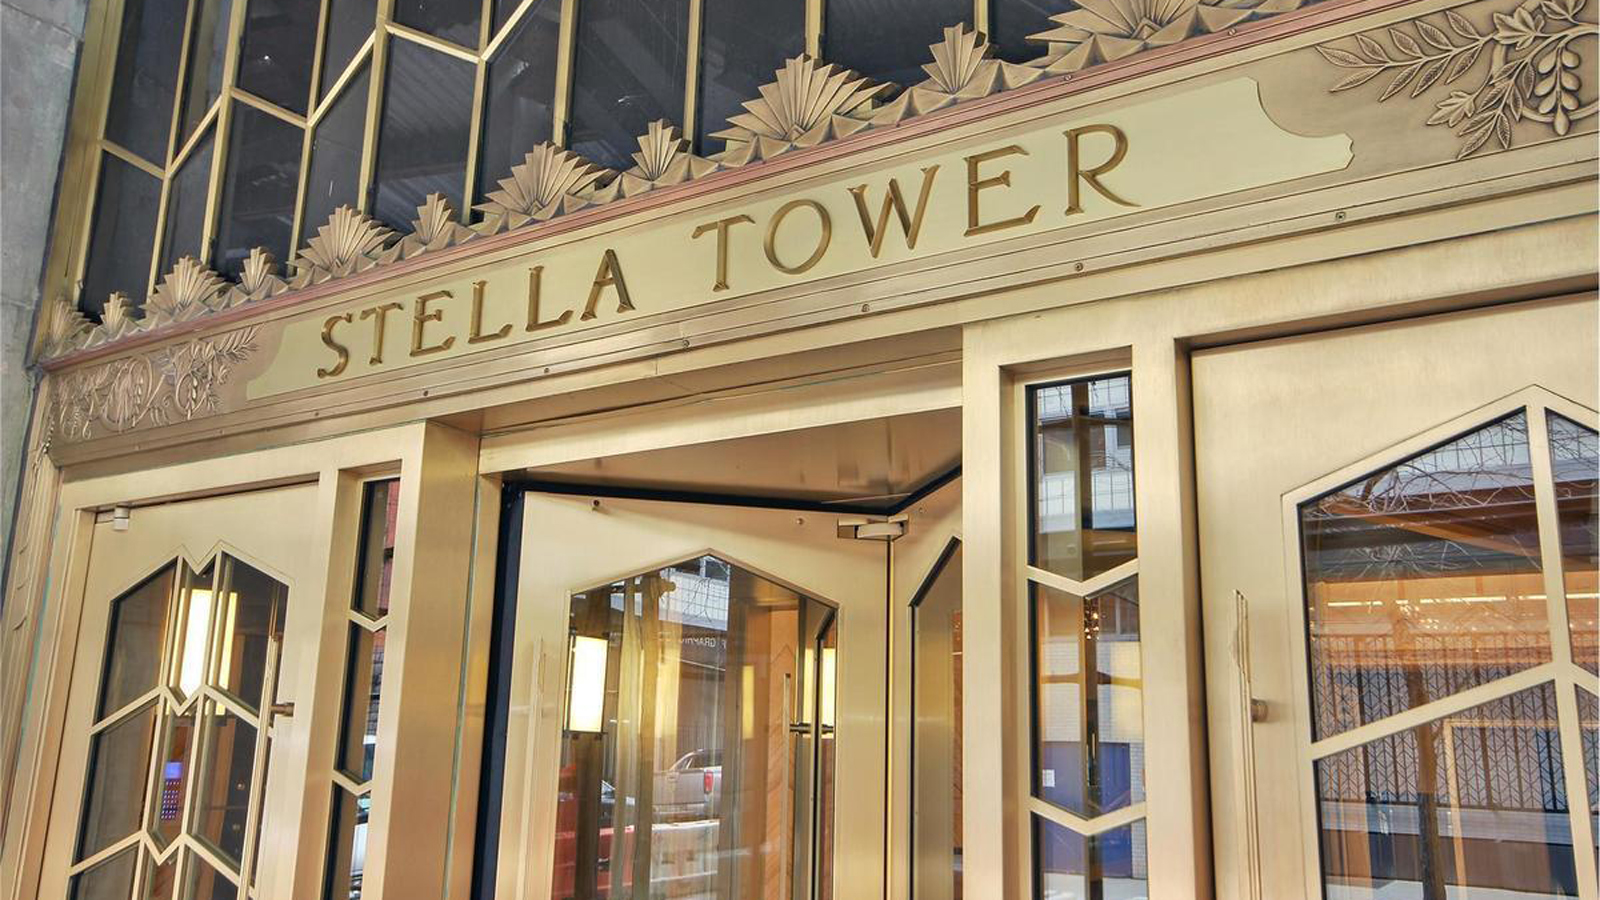 Stella Tower, 425 West 50th Street, NYC - Condo Apartments